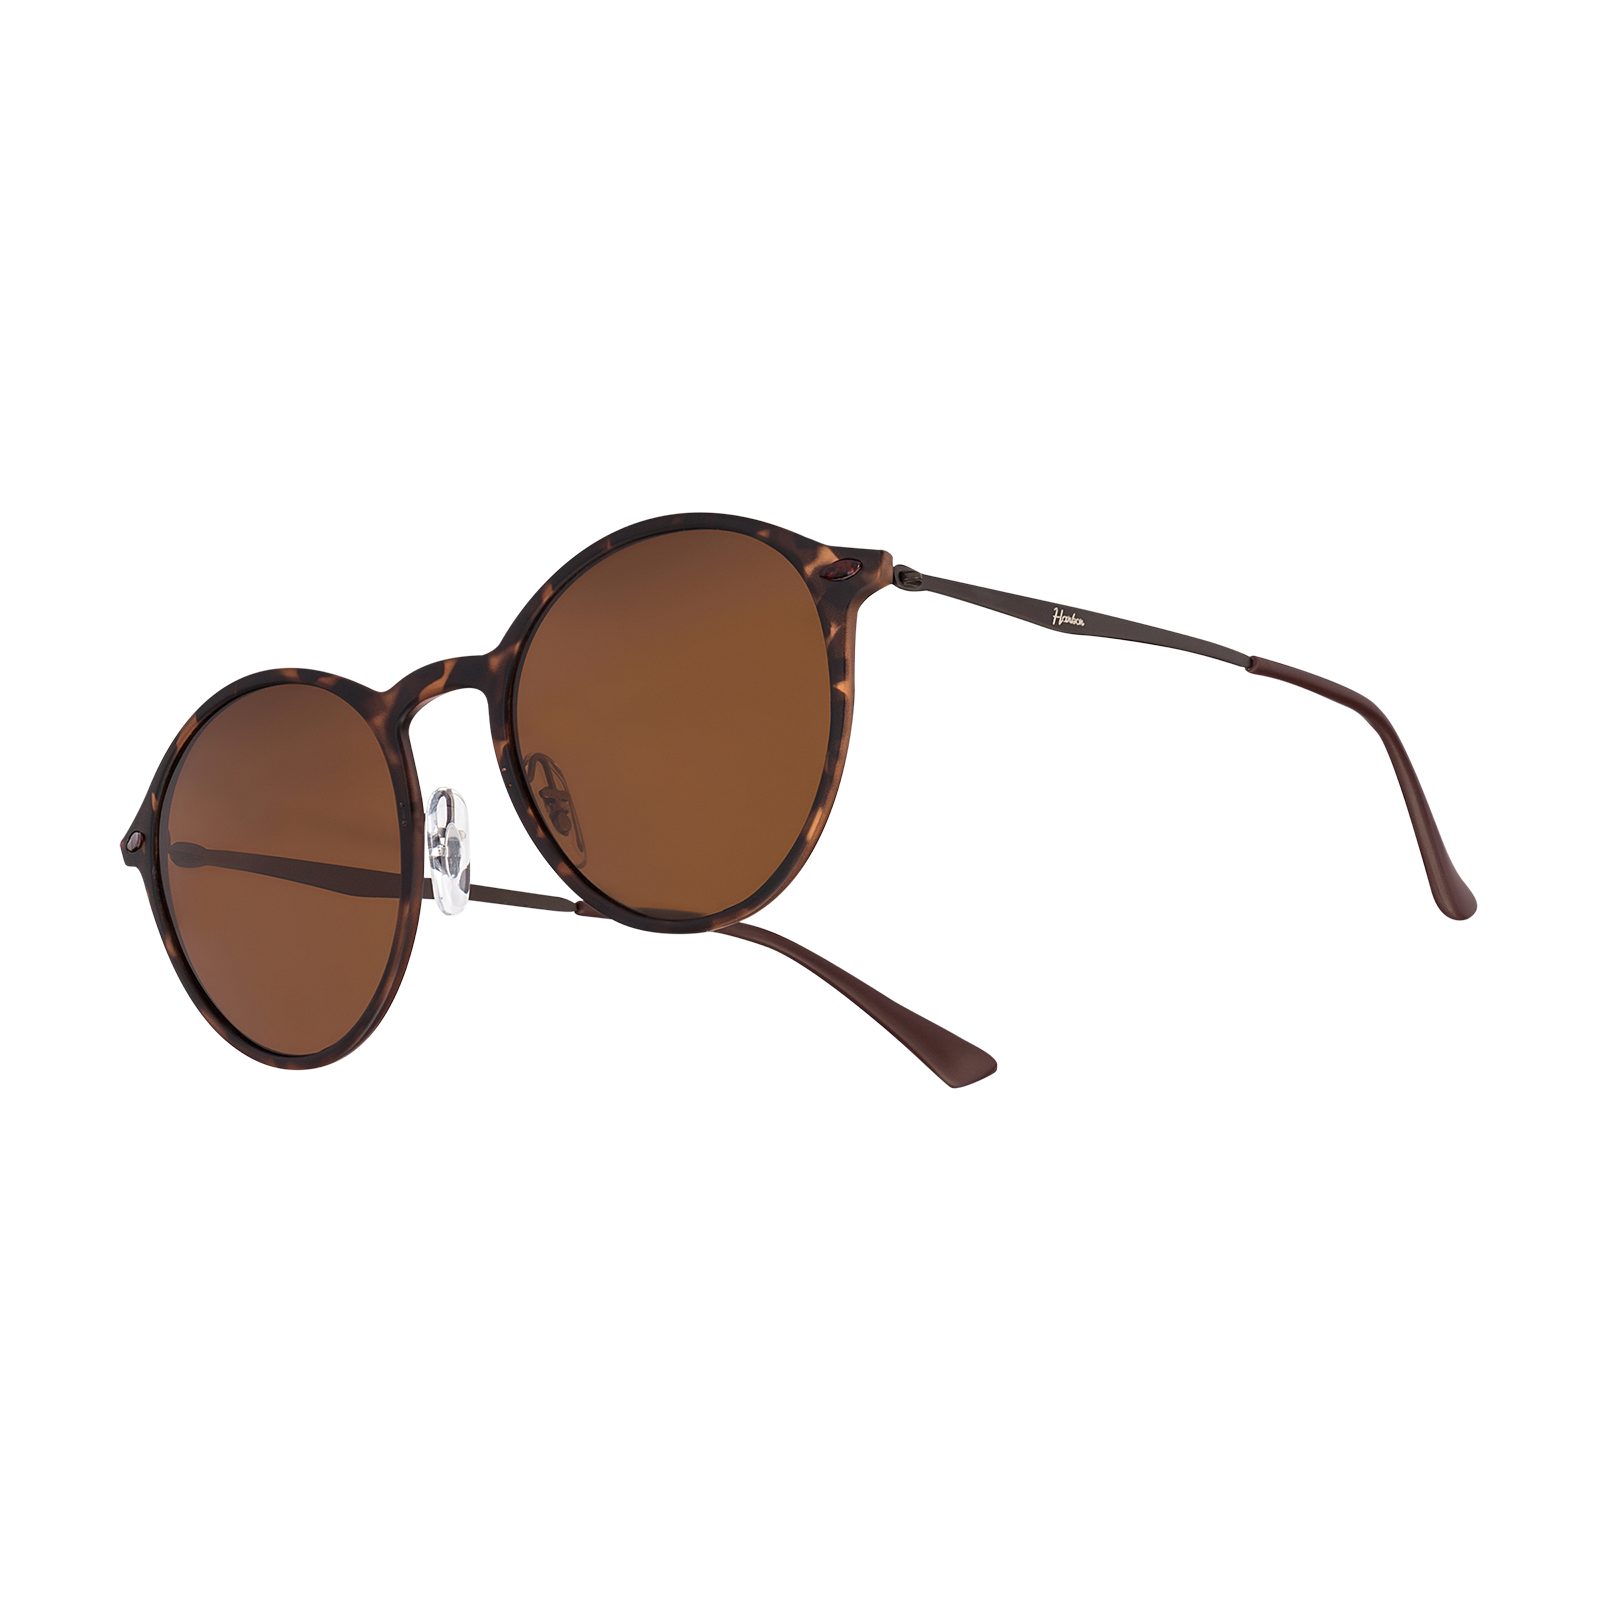 Sunglasses product photography